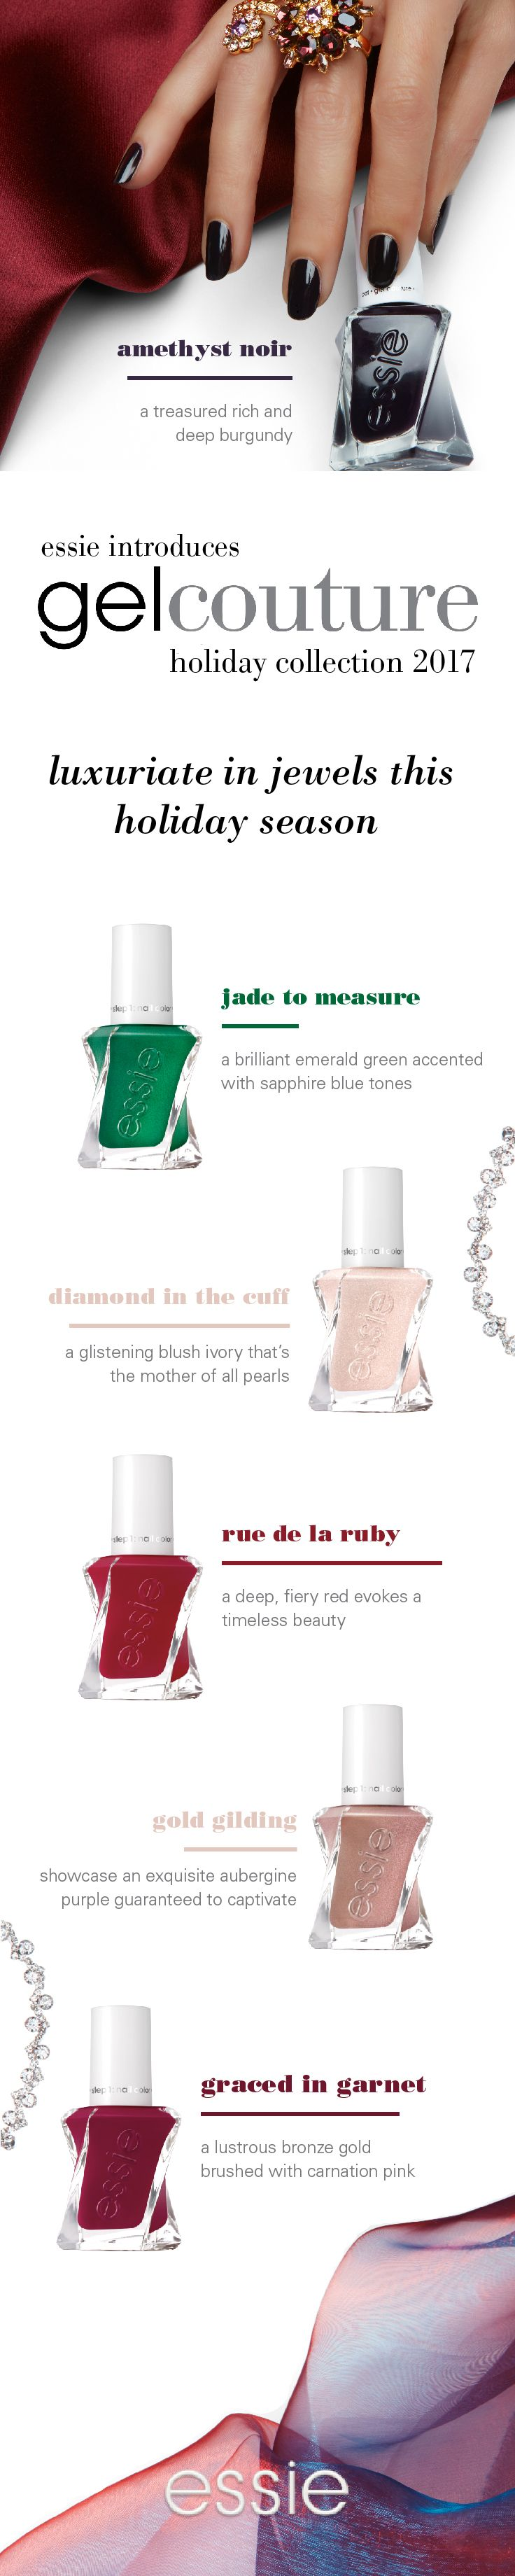 'tis the season with gel couture holiday 2017! indulge in our most decadent jewel-toned nail colors. perfect for the holiday season, try the rich burgundy 'amethyst noir' or the glittering rose gold 'gold gilding'. essie gel couture gives you a flawless longwear mani in an easy 2-step system – no base coat or lamp needed for a perfect gel-like mani.  Shop now on essie.com